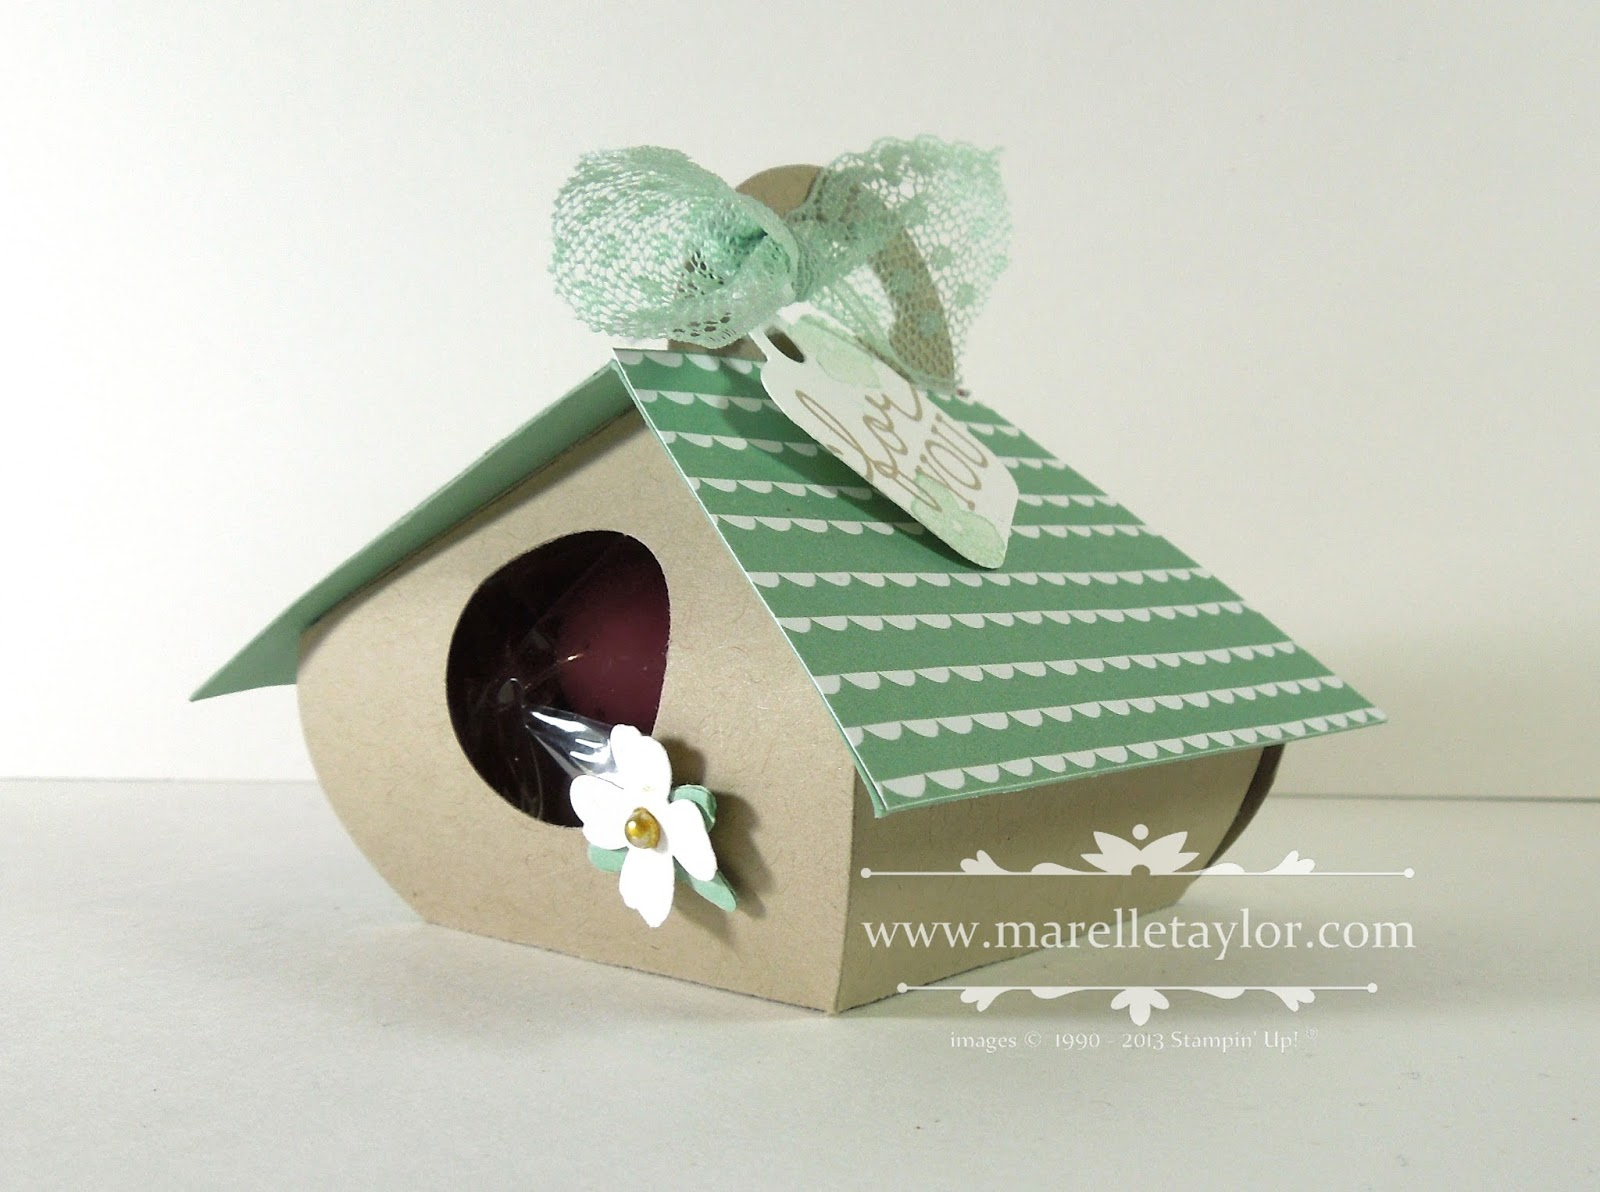 Marelle taylor stampin up demonstrator sydney australia little i wanted to make a little birdhouse as one of my easter projects this year and i thought the curvy keepsake box would make a cute little birdhouse negle Choice Image